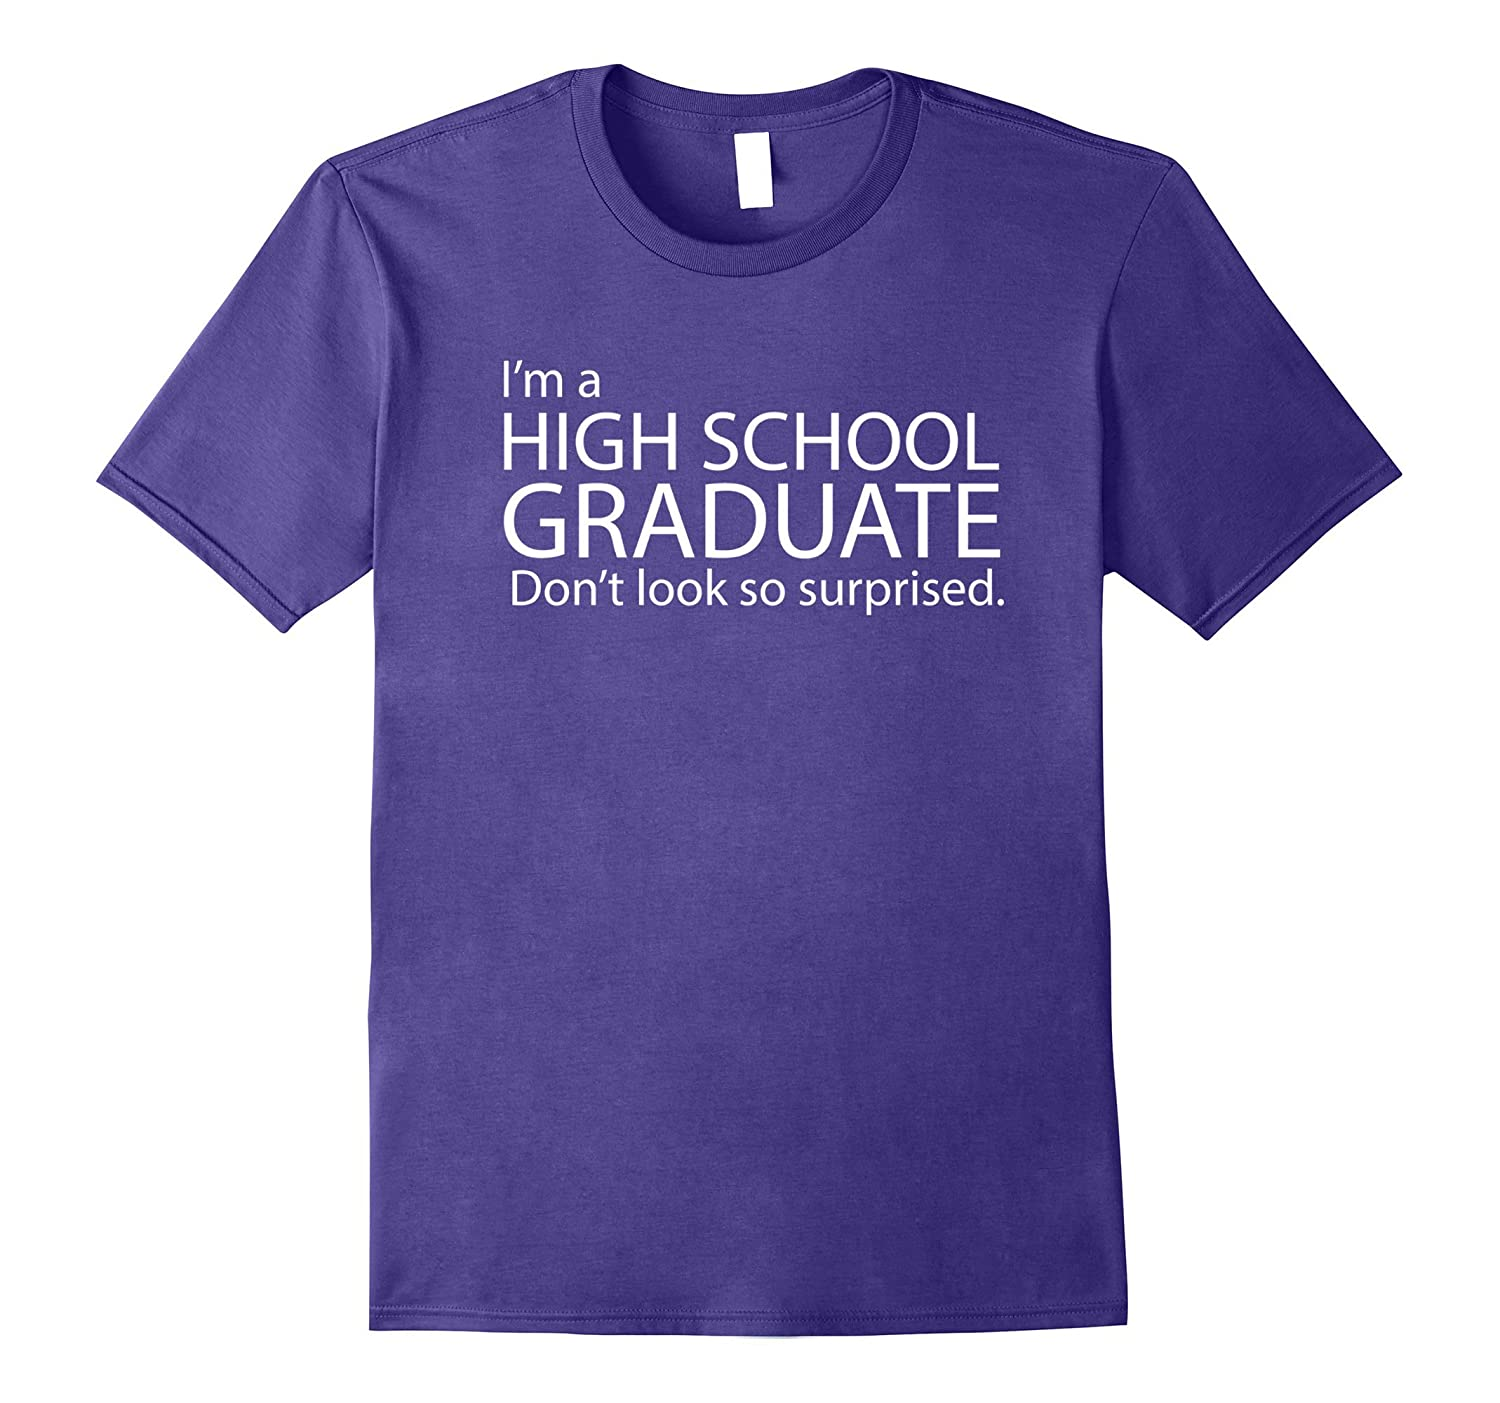 I'm a HIGH SCHOOL GRADUATE don't look so surprised Tee Shirt-TH